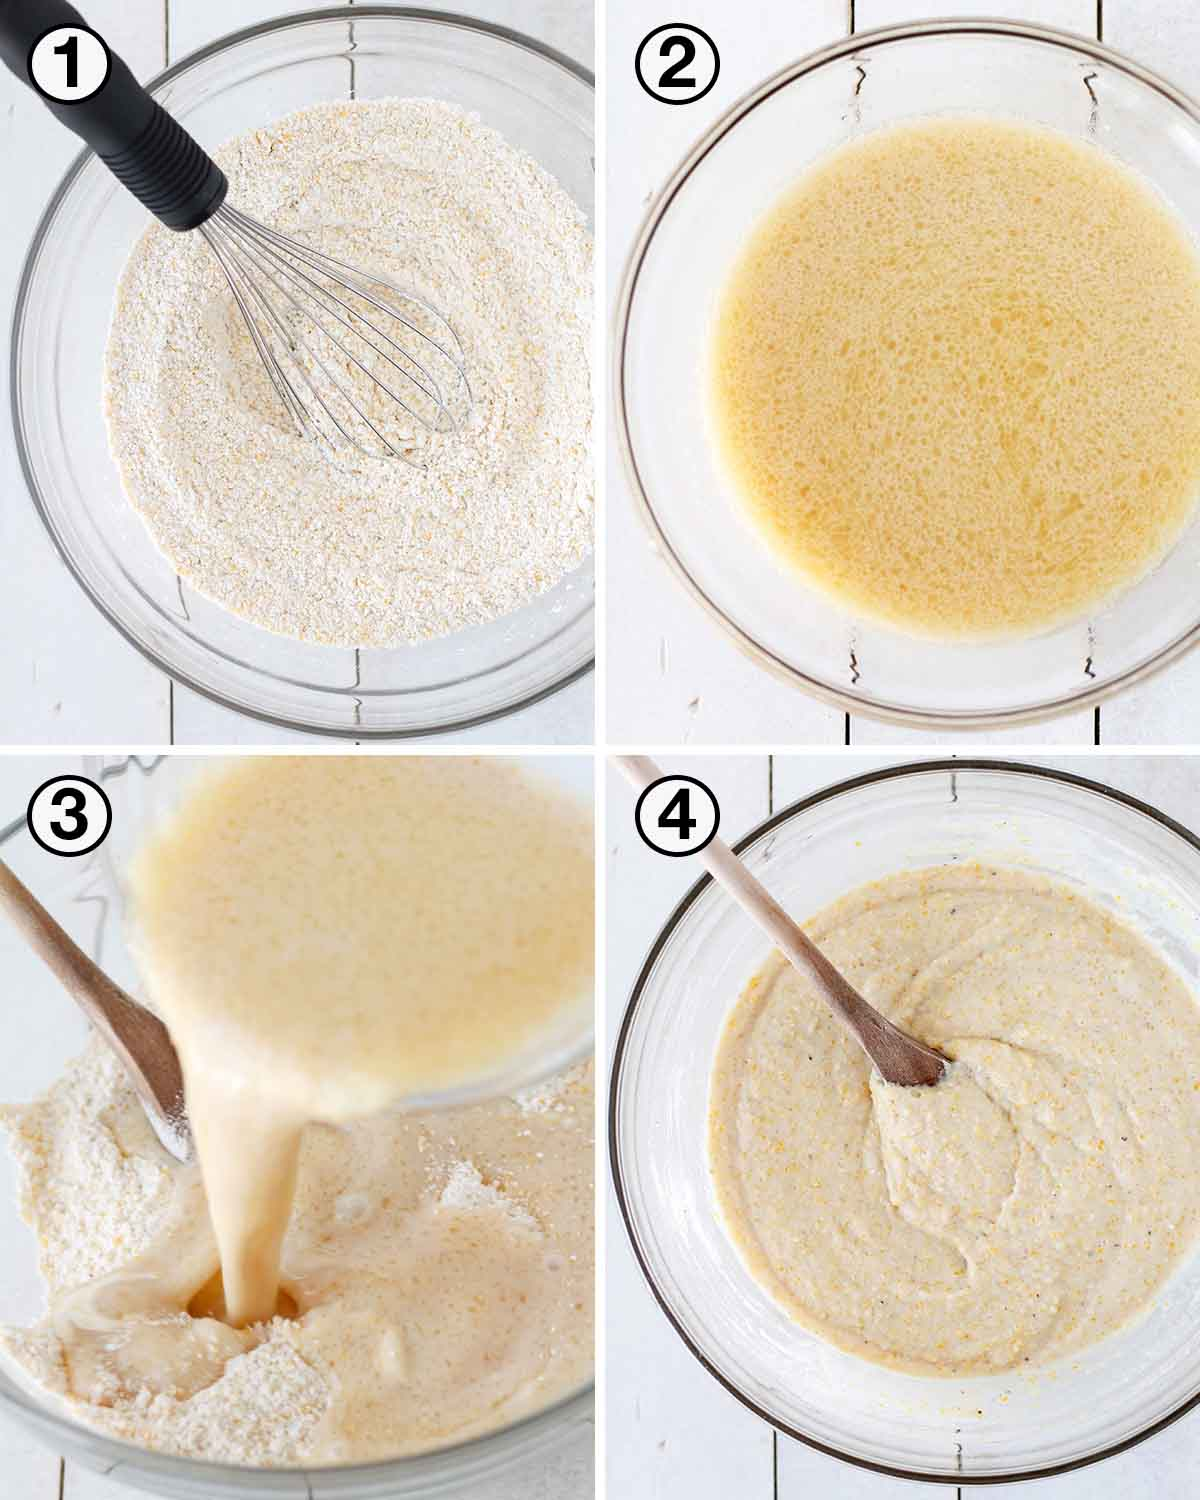 A collage of four images showing the sequence of steps needed to make dairy-free egg-free cornbread.